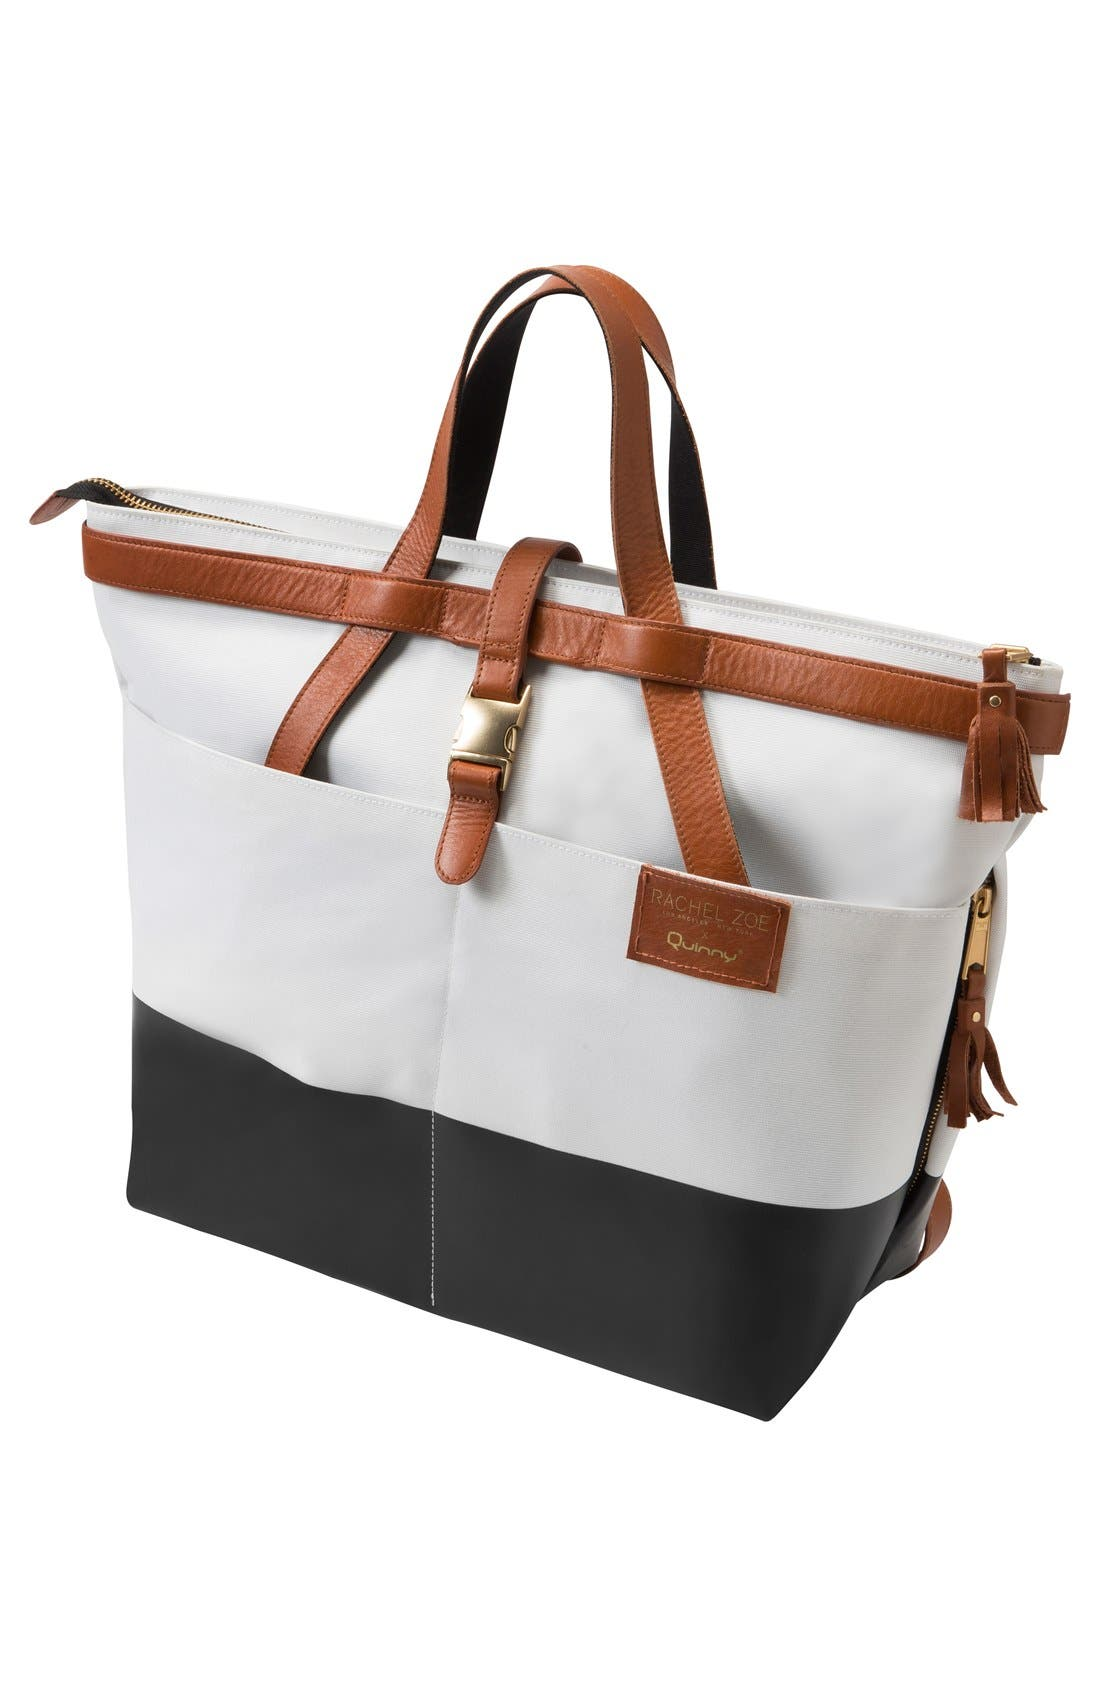 Quinny x Rachel Zoe 'Jet Set' Canvas Diaper Bag